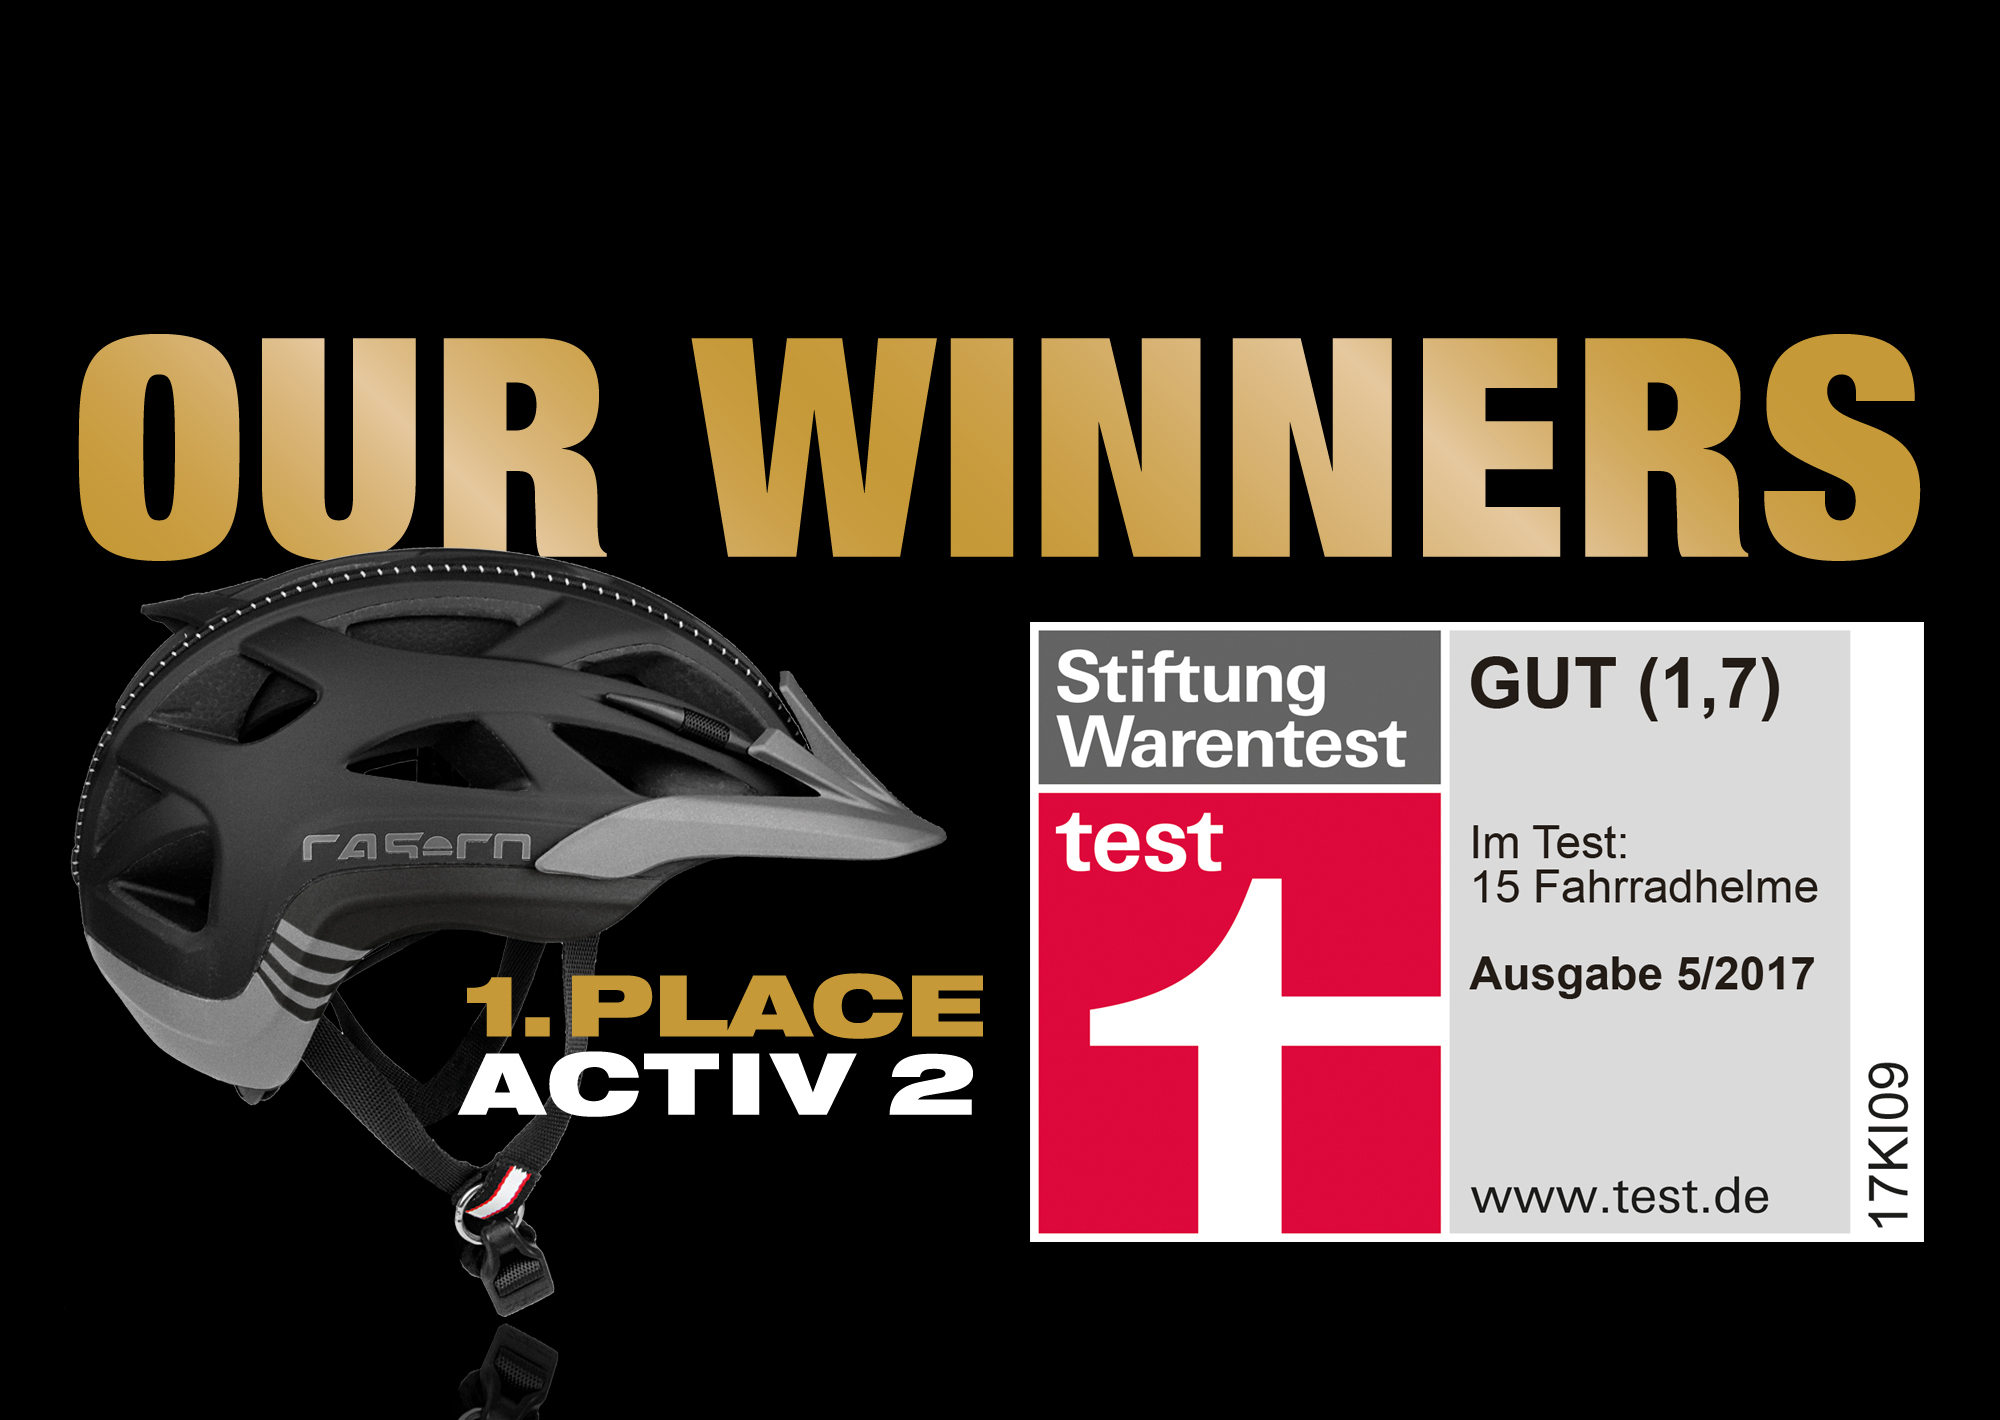 casco activ 2 is test winner of stiftung warentest adac. Black Bedroom Furniture Sets. Home Design Ideas